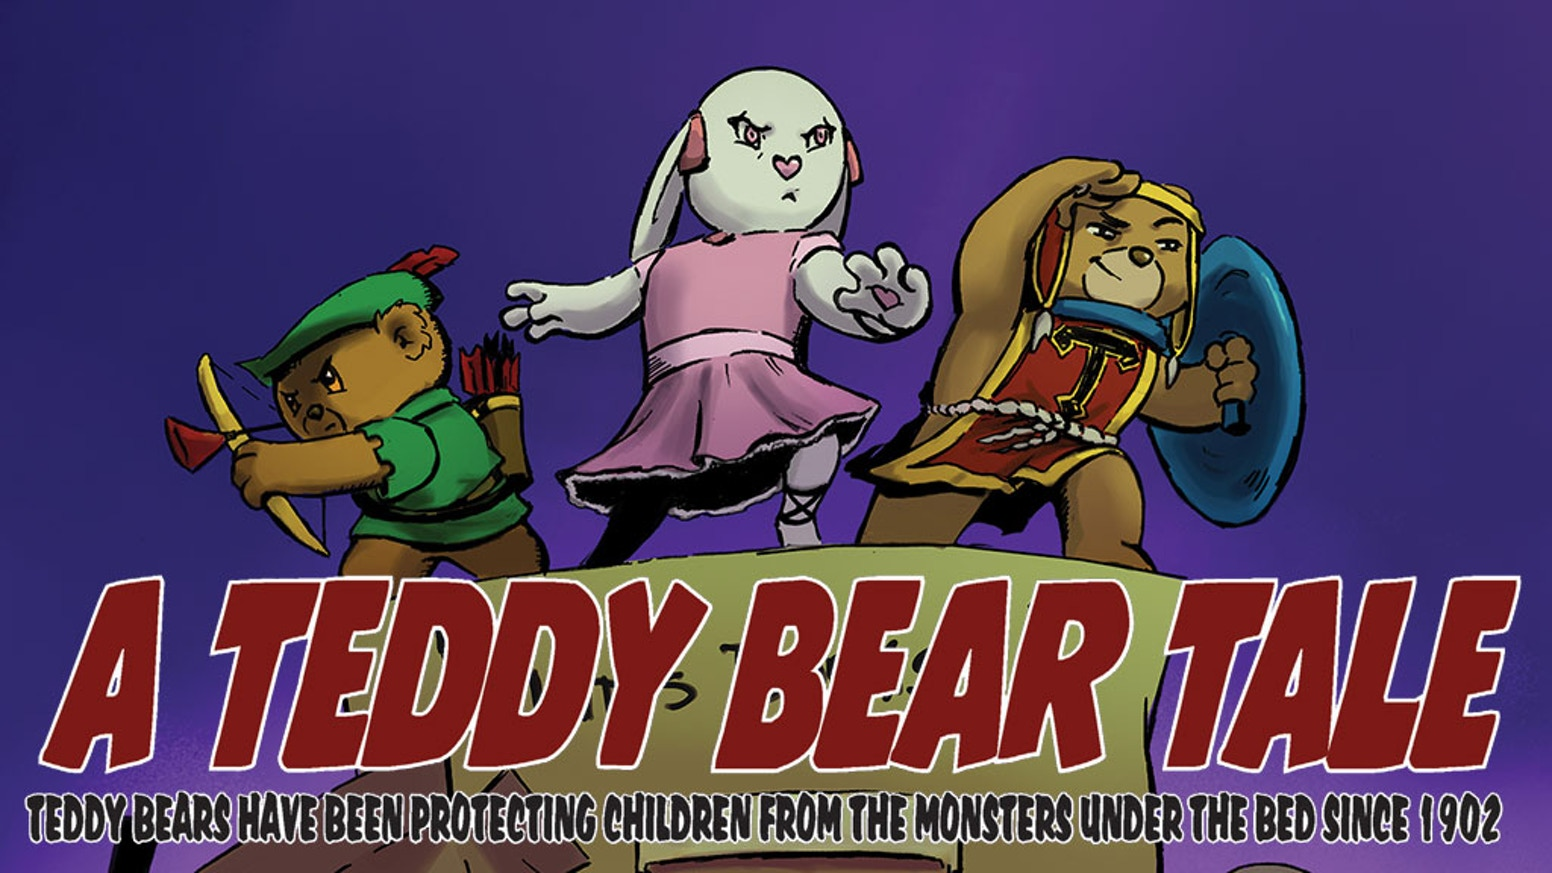 Our ragtag band of heroic cuddly toys must stop the monsters under the bed from kidnapping their child